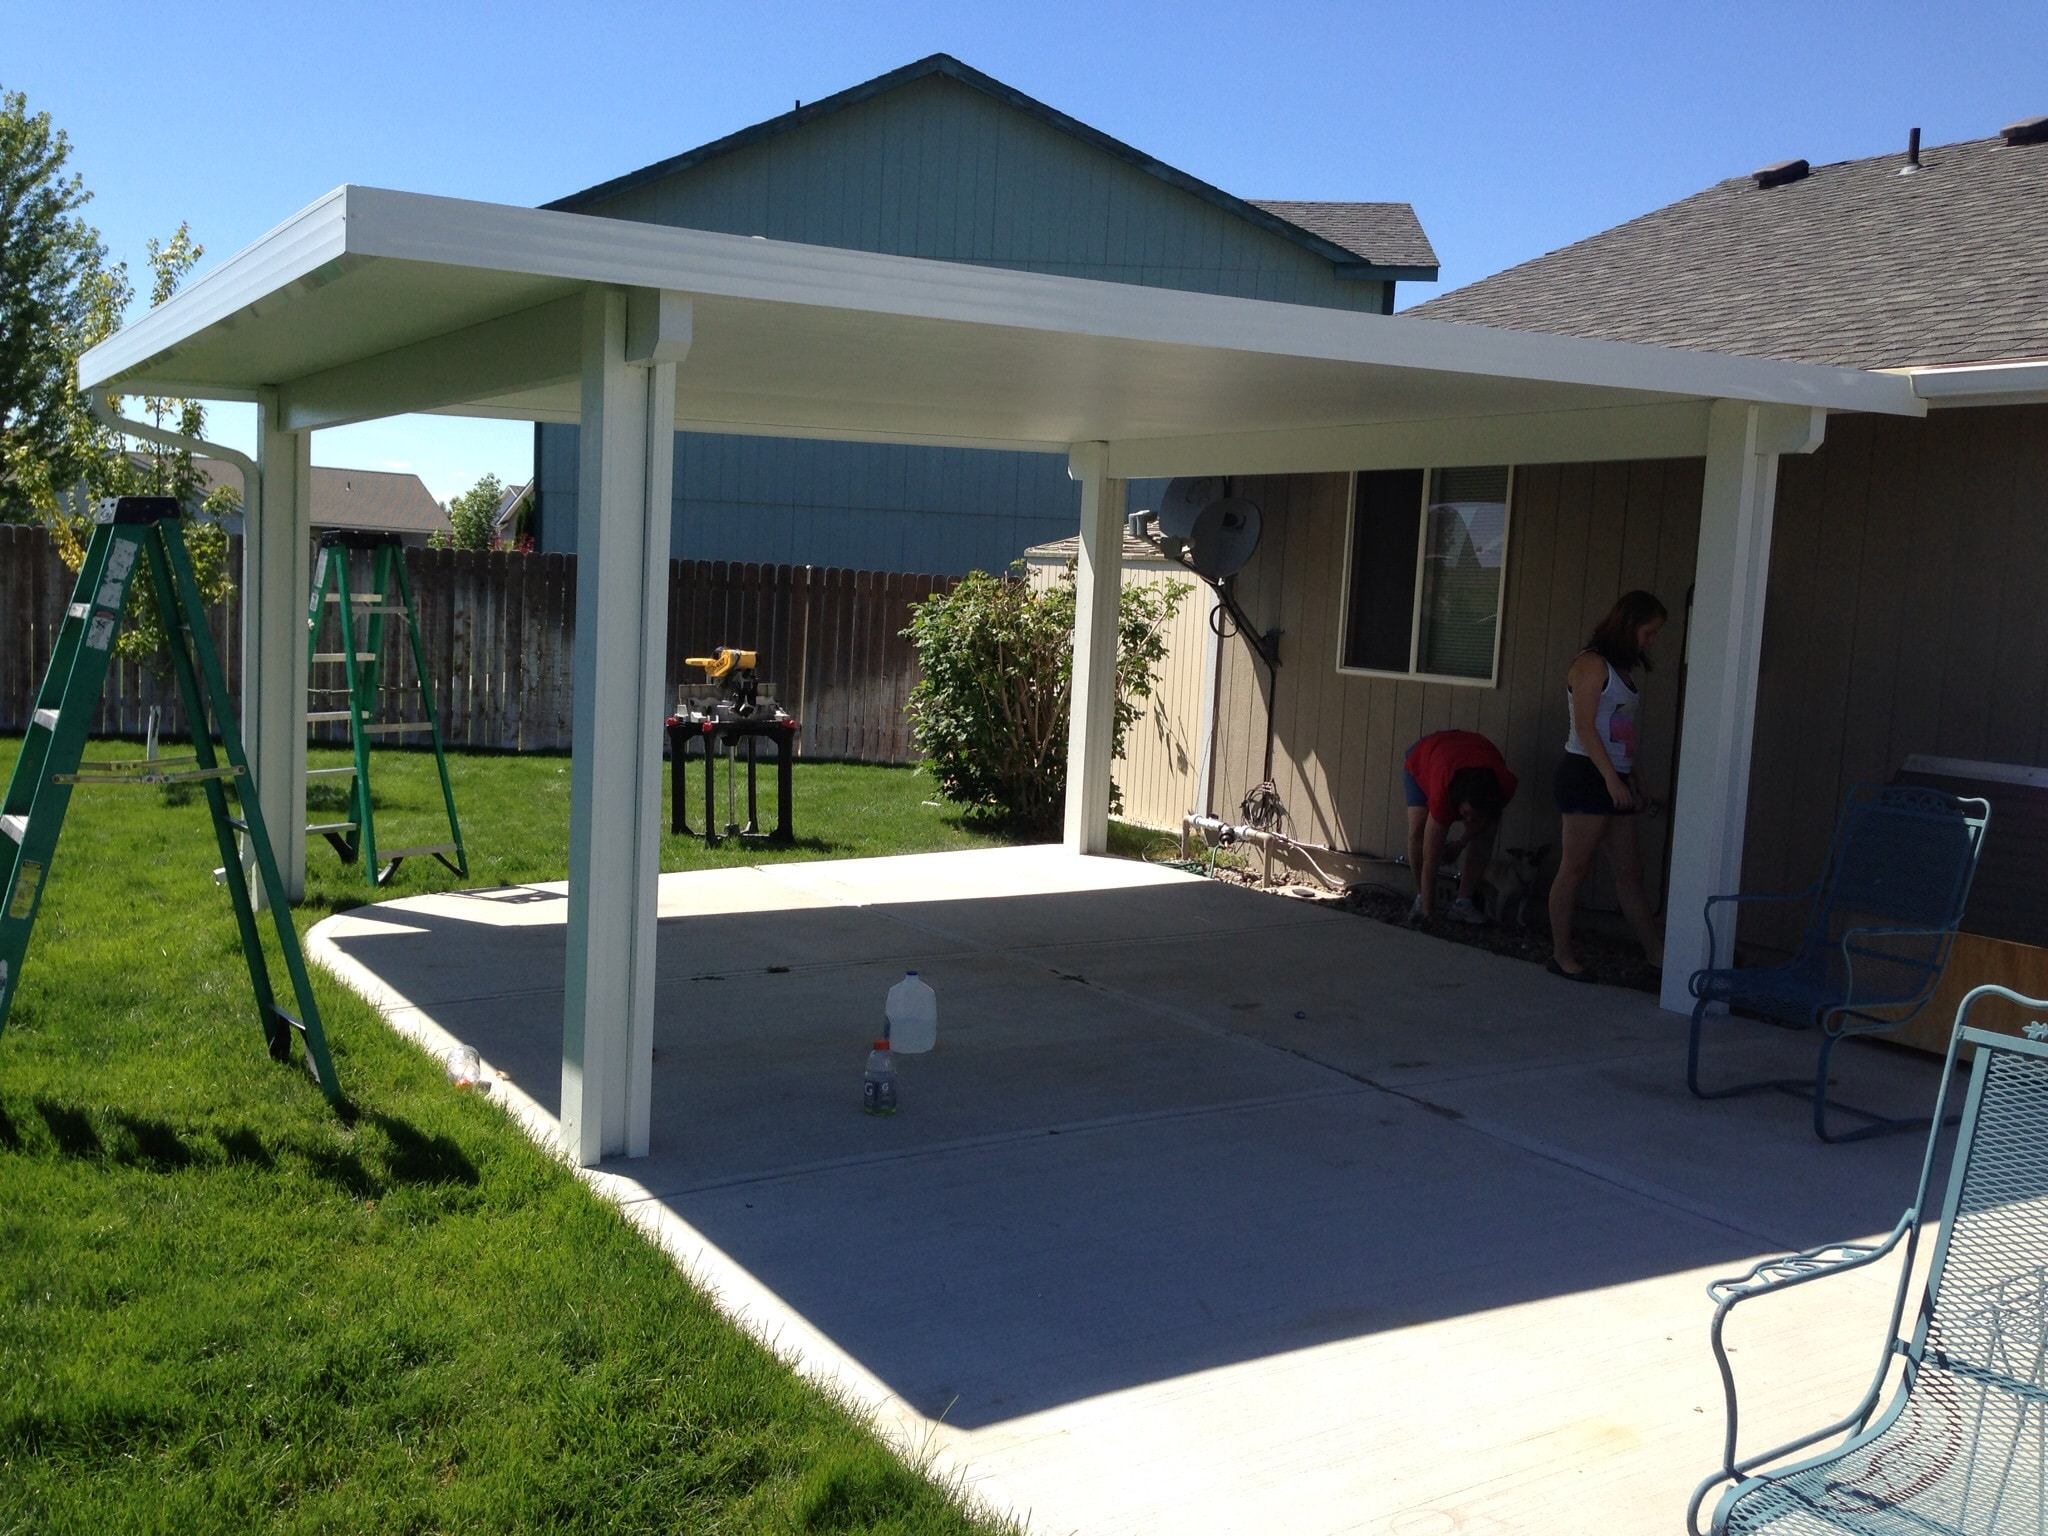 Pergolas | Patio Covers Unlimited NW | Tri Cities, WA